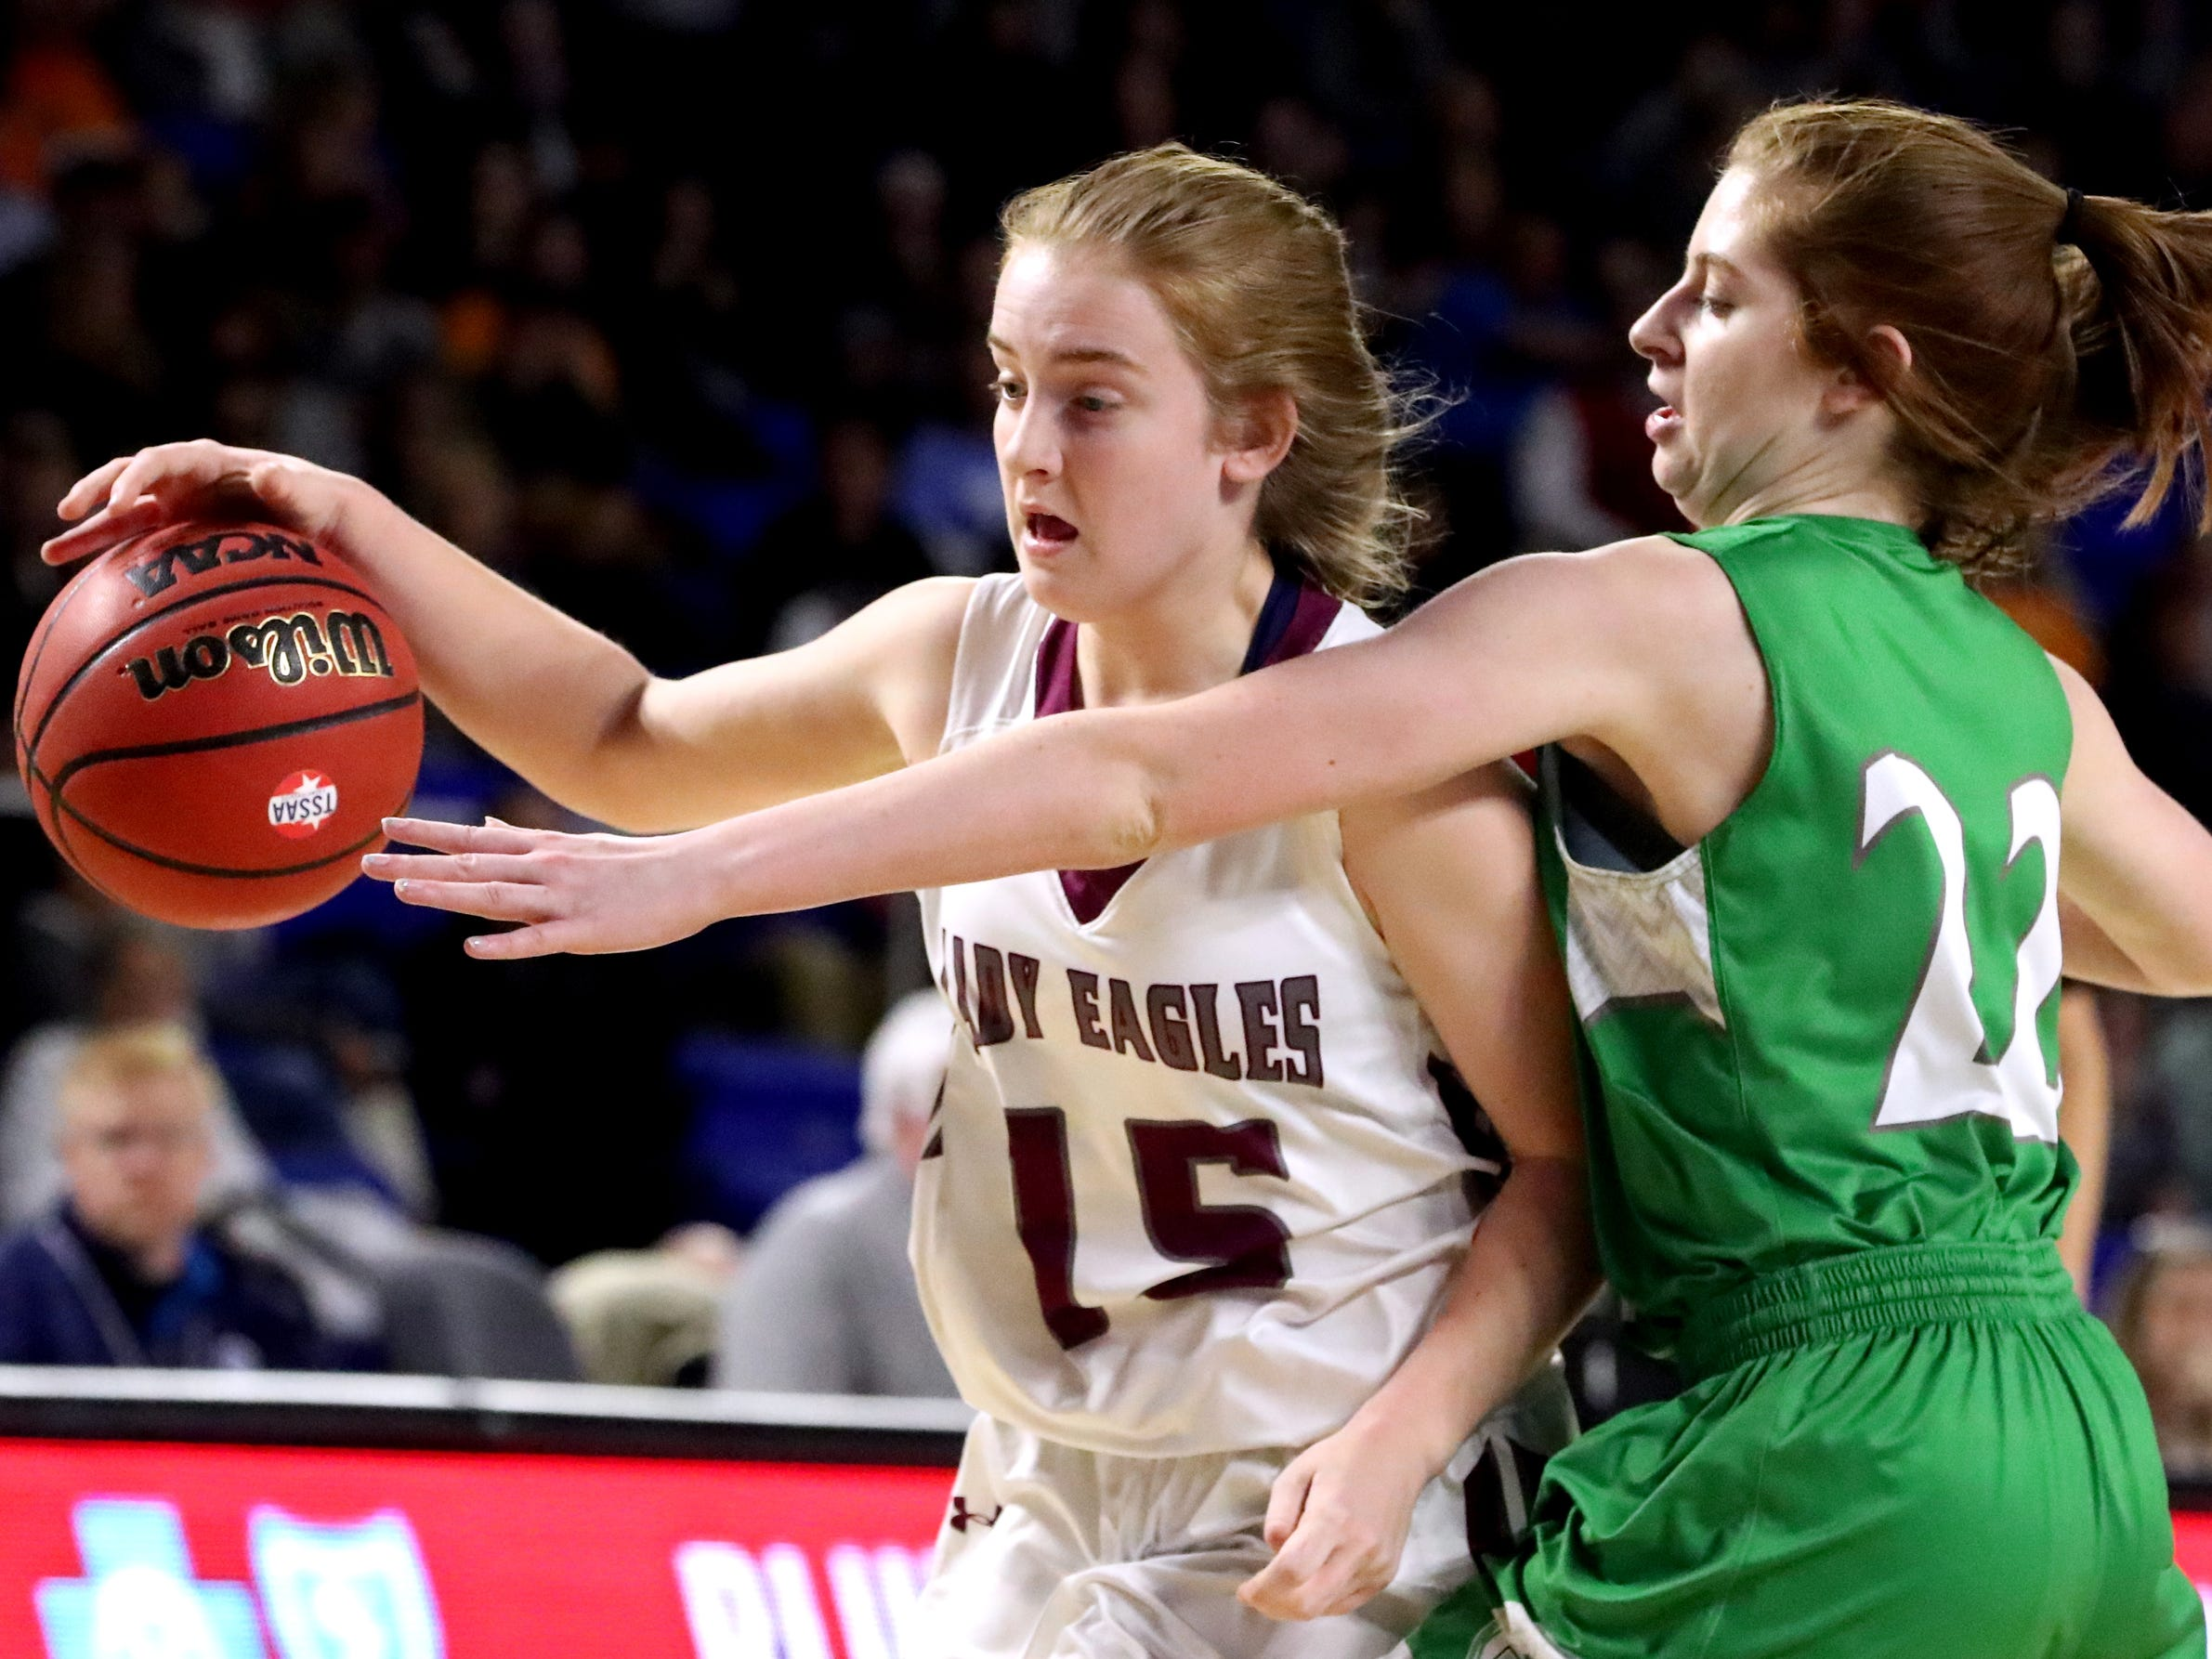 Eagleville's Makayla Moates (15) moves the ball around the court as Midway's Emily Cawood (22) guards her during the quarterfinal round of the TSSAA Div. 1 Class A Girls State Tournament, on Thursday, March 7, 2019, at Murphy Center in Murfreesboro, Tenn.